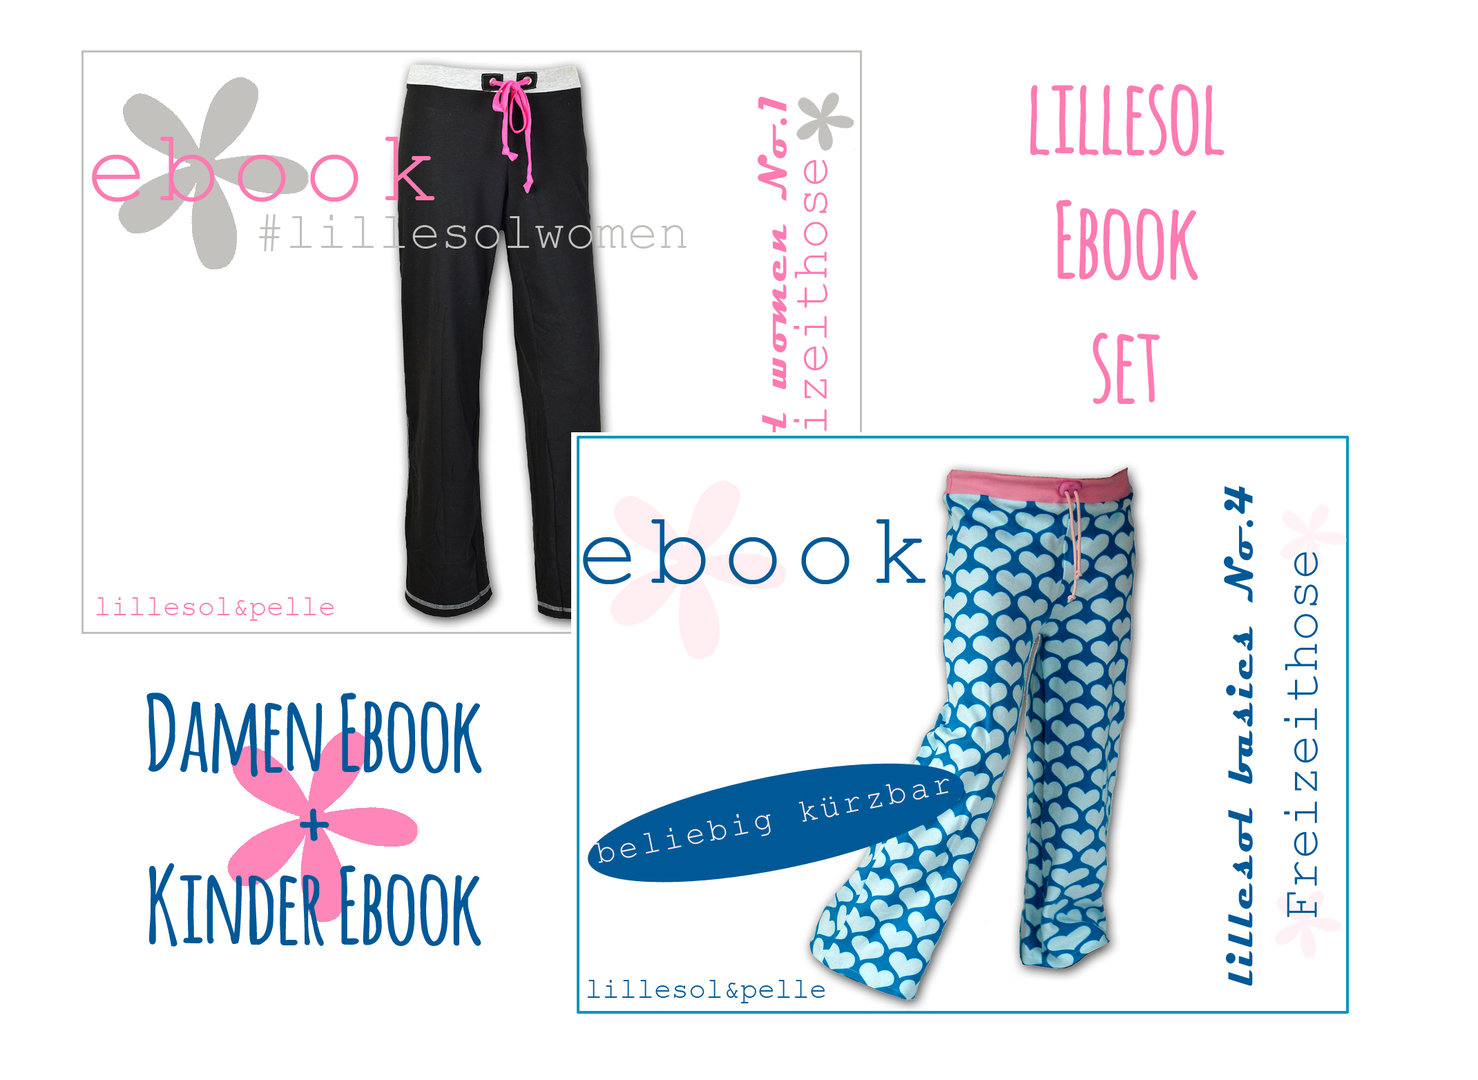 lillesol ebook set basic No.4 und women No.1  *mit Video-Nähanleitung*